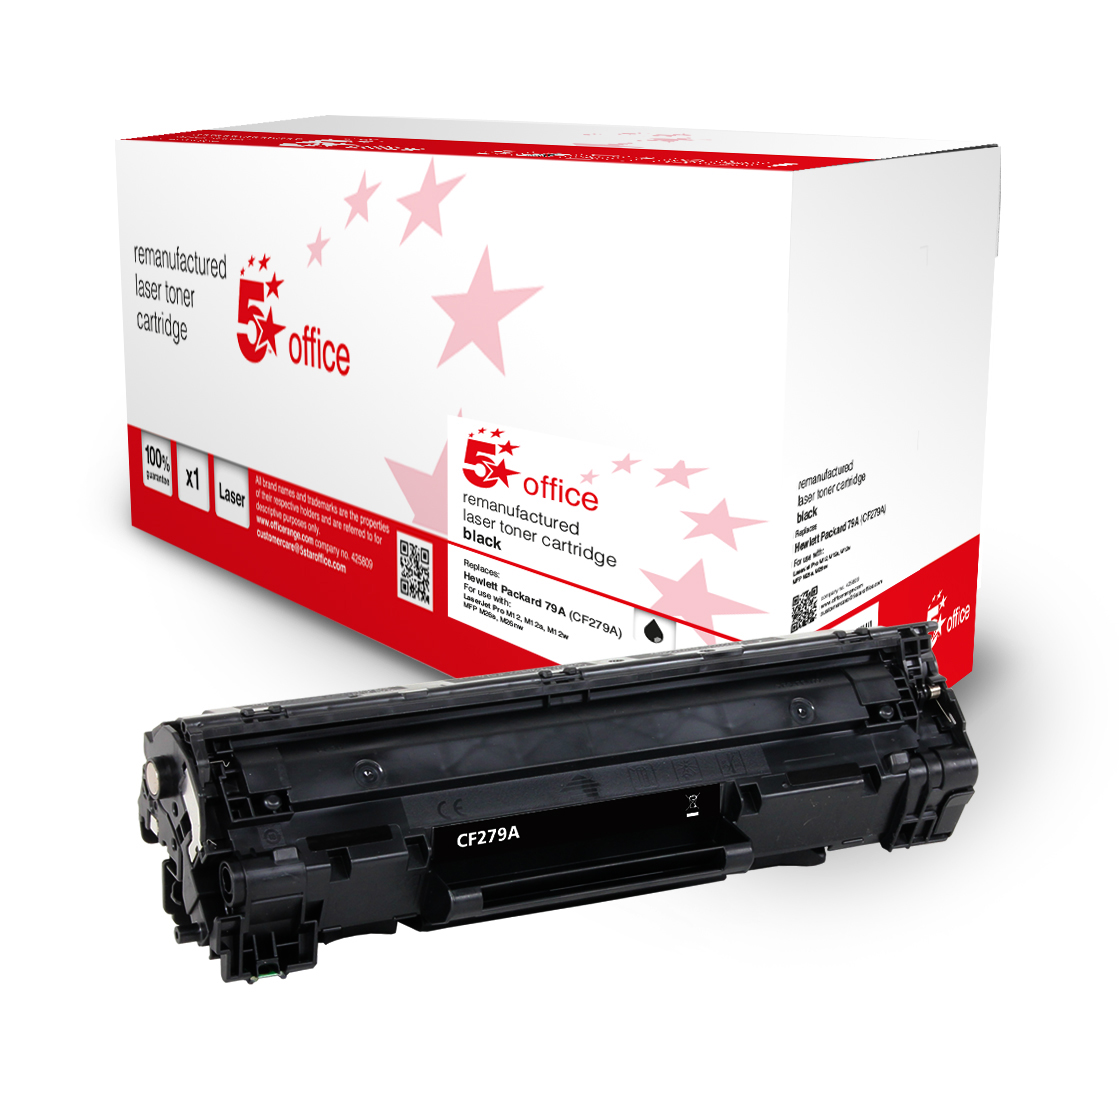 5 Star Office Remanufactured Toner Cartridge Page Life Black 1000pp [HP 79A CF279A Alternative]